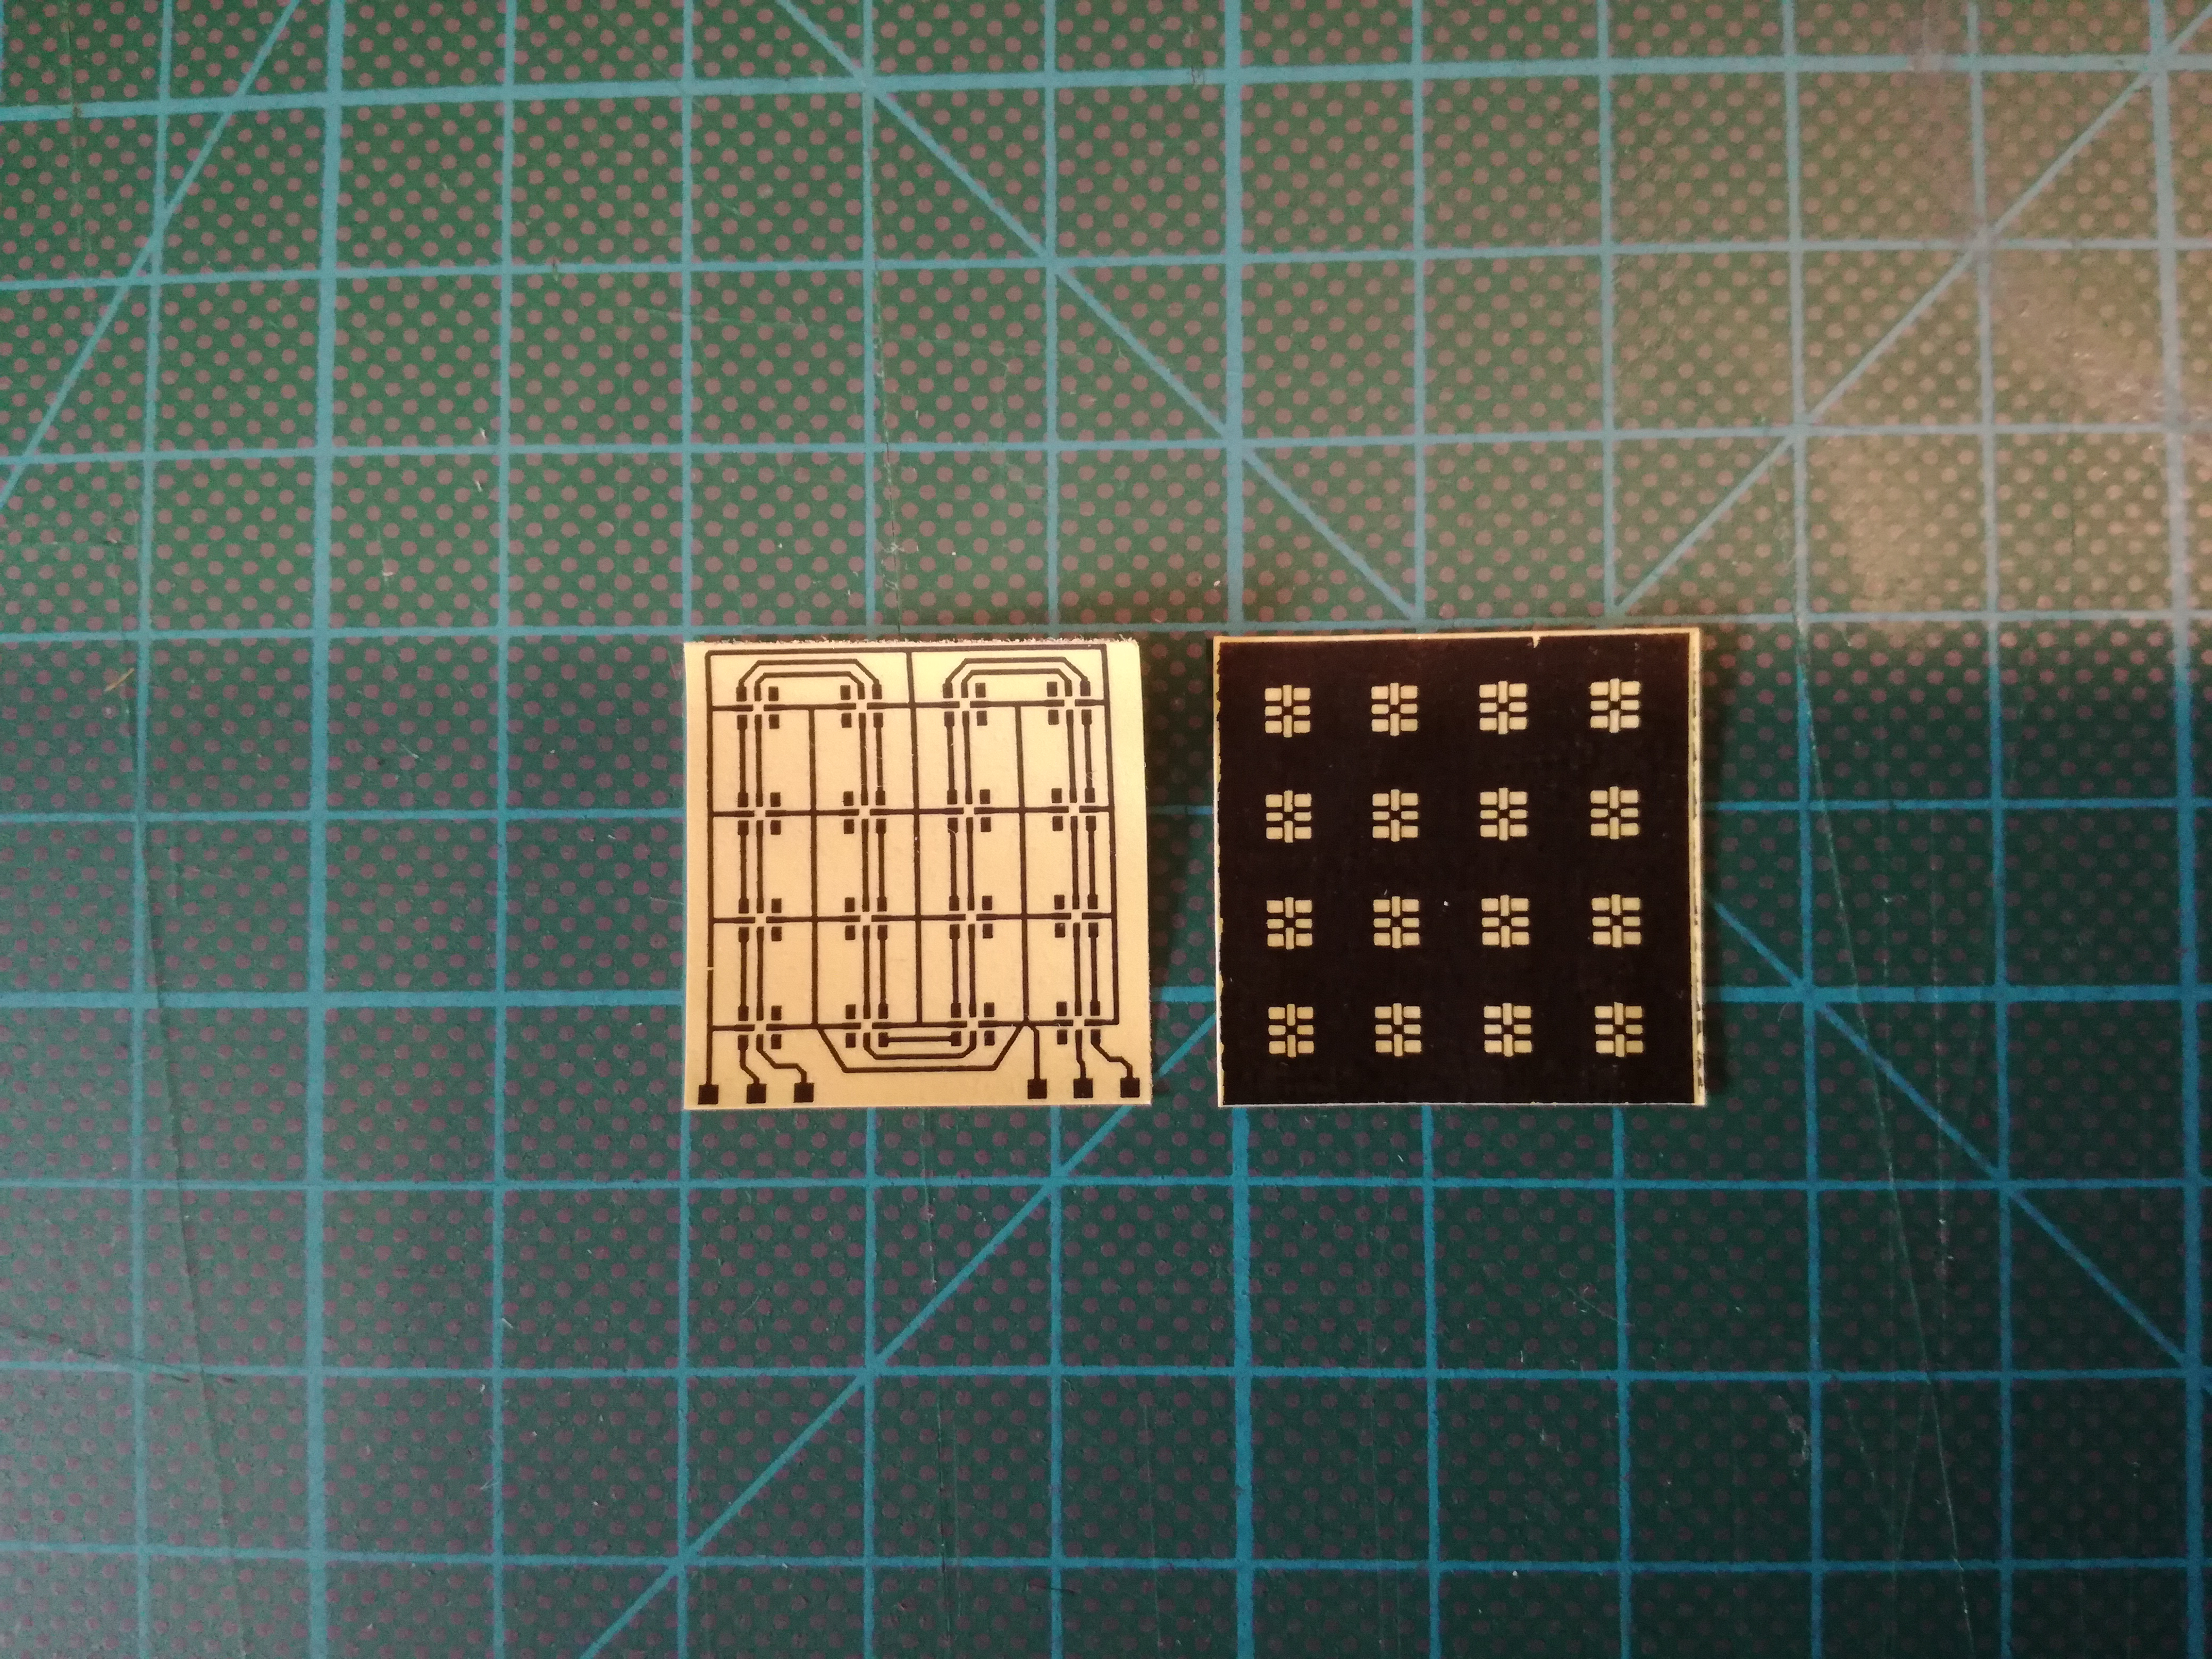 Picture of Printing the PCB Layout